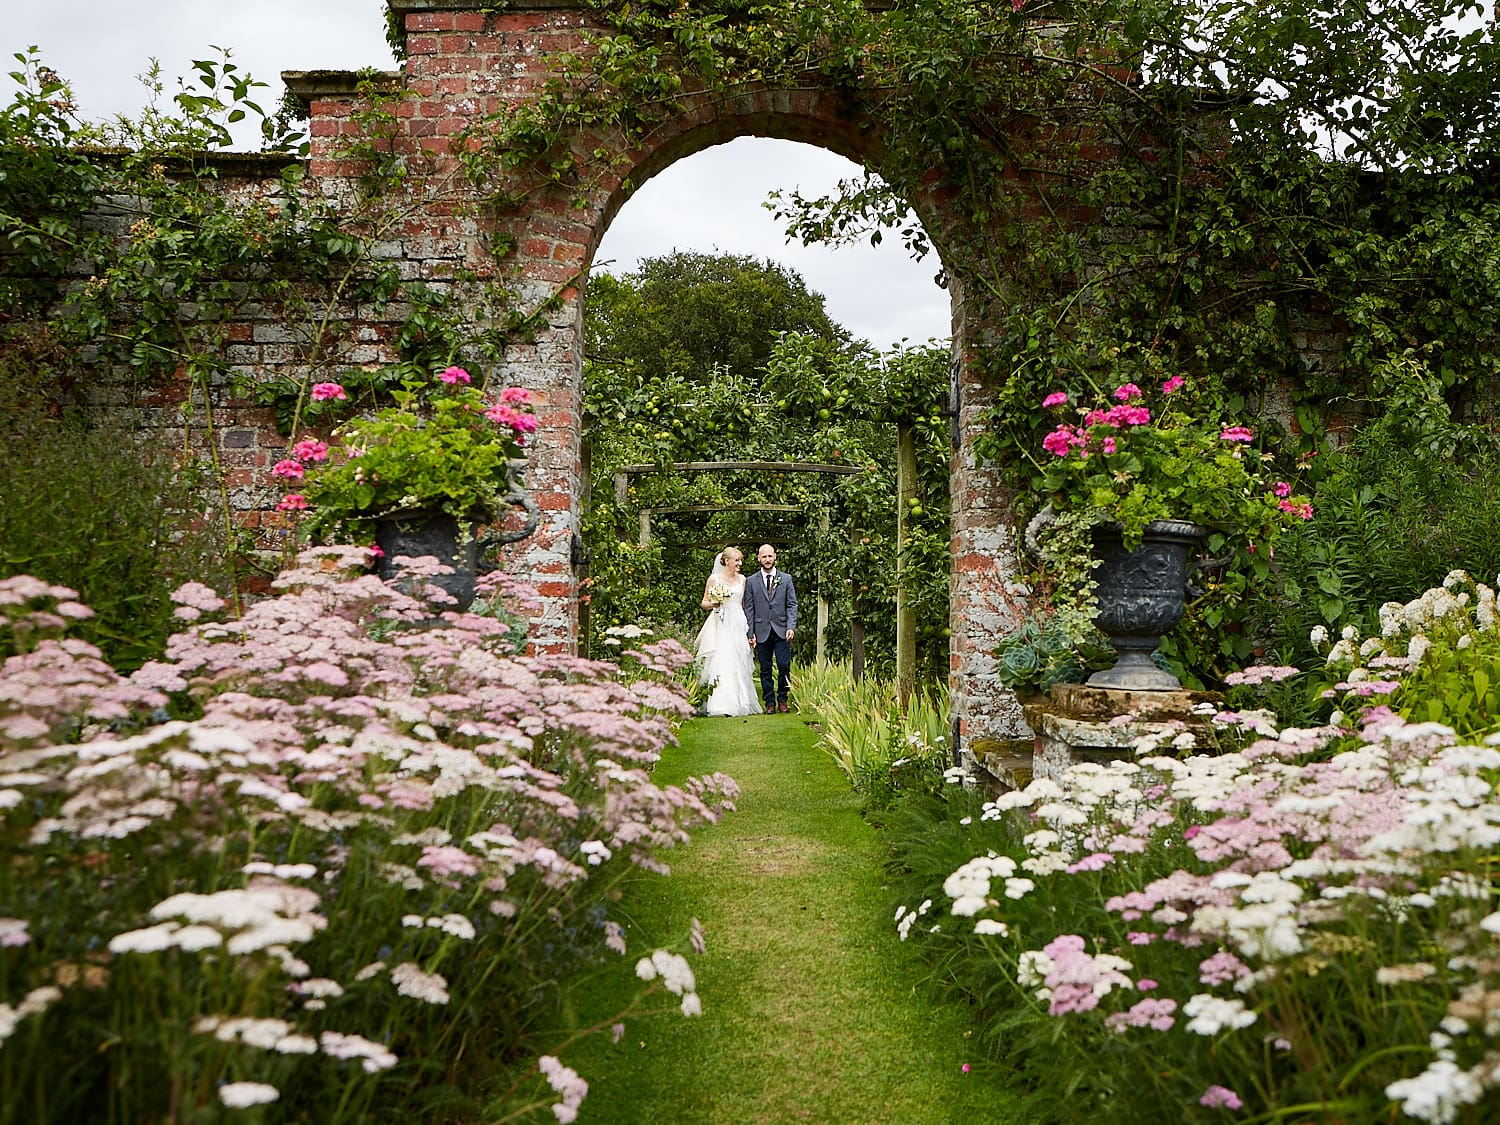 A just married oucple wander through the gardens of National Trust property Gunby Hall in Lincolnshire.